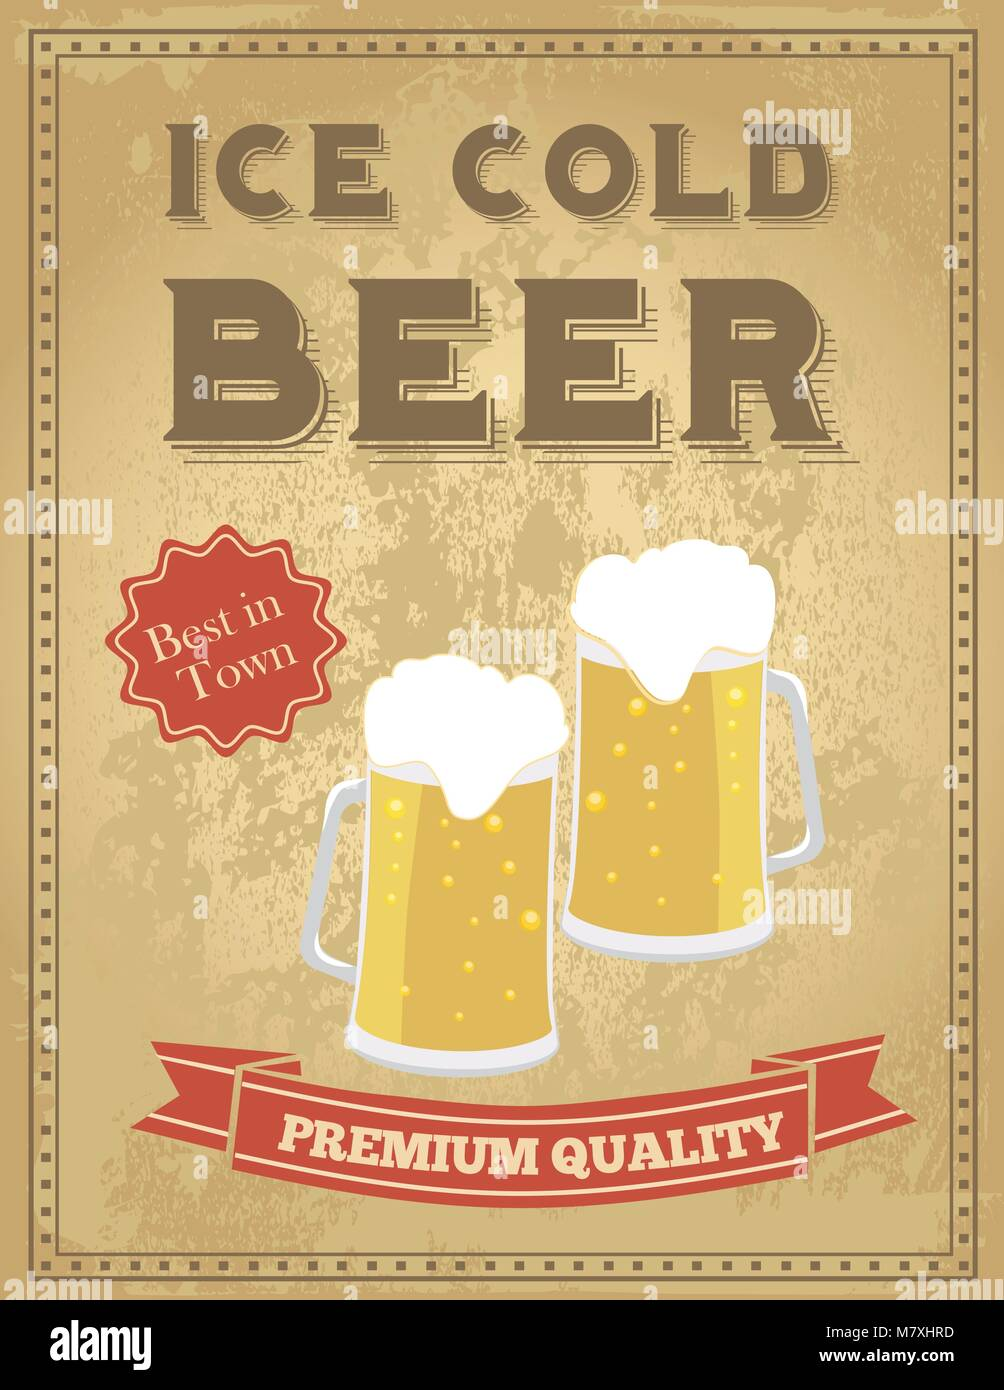 Vintage Beer Poster With Grunge Effects